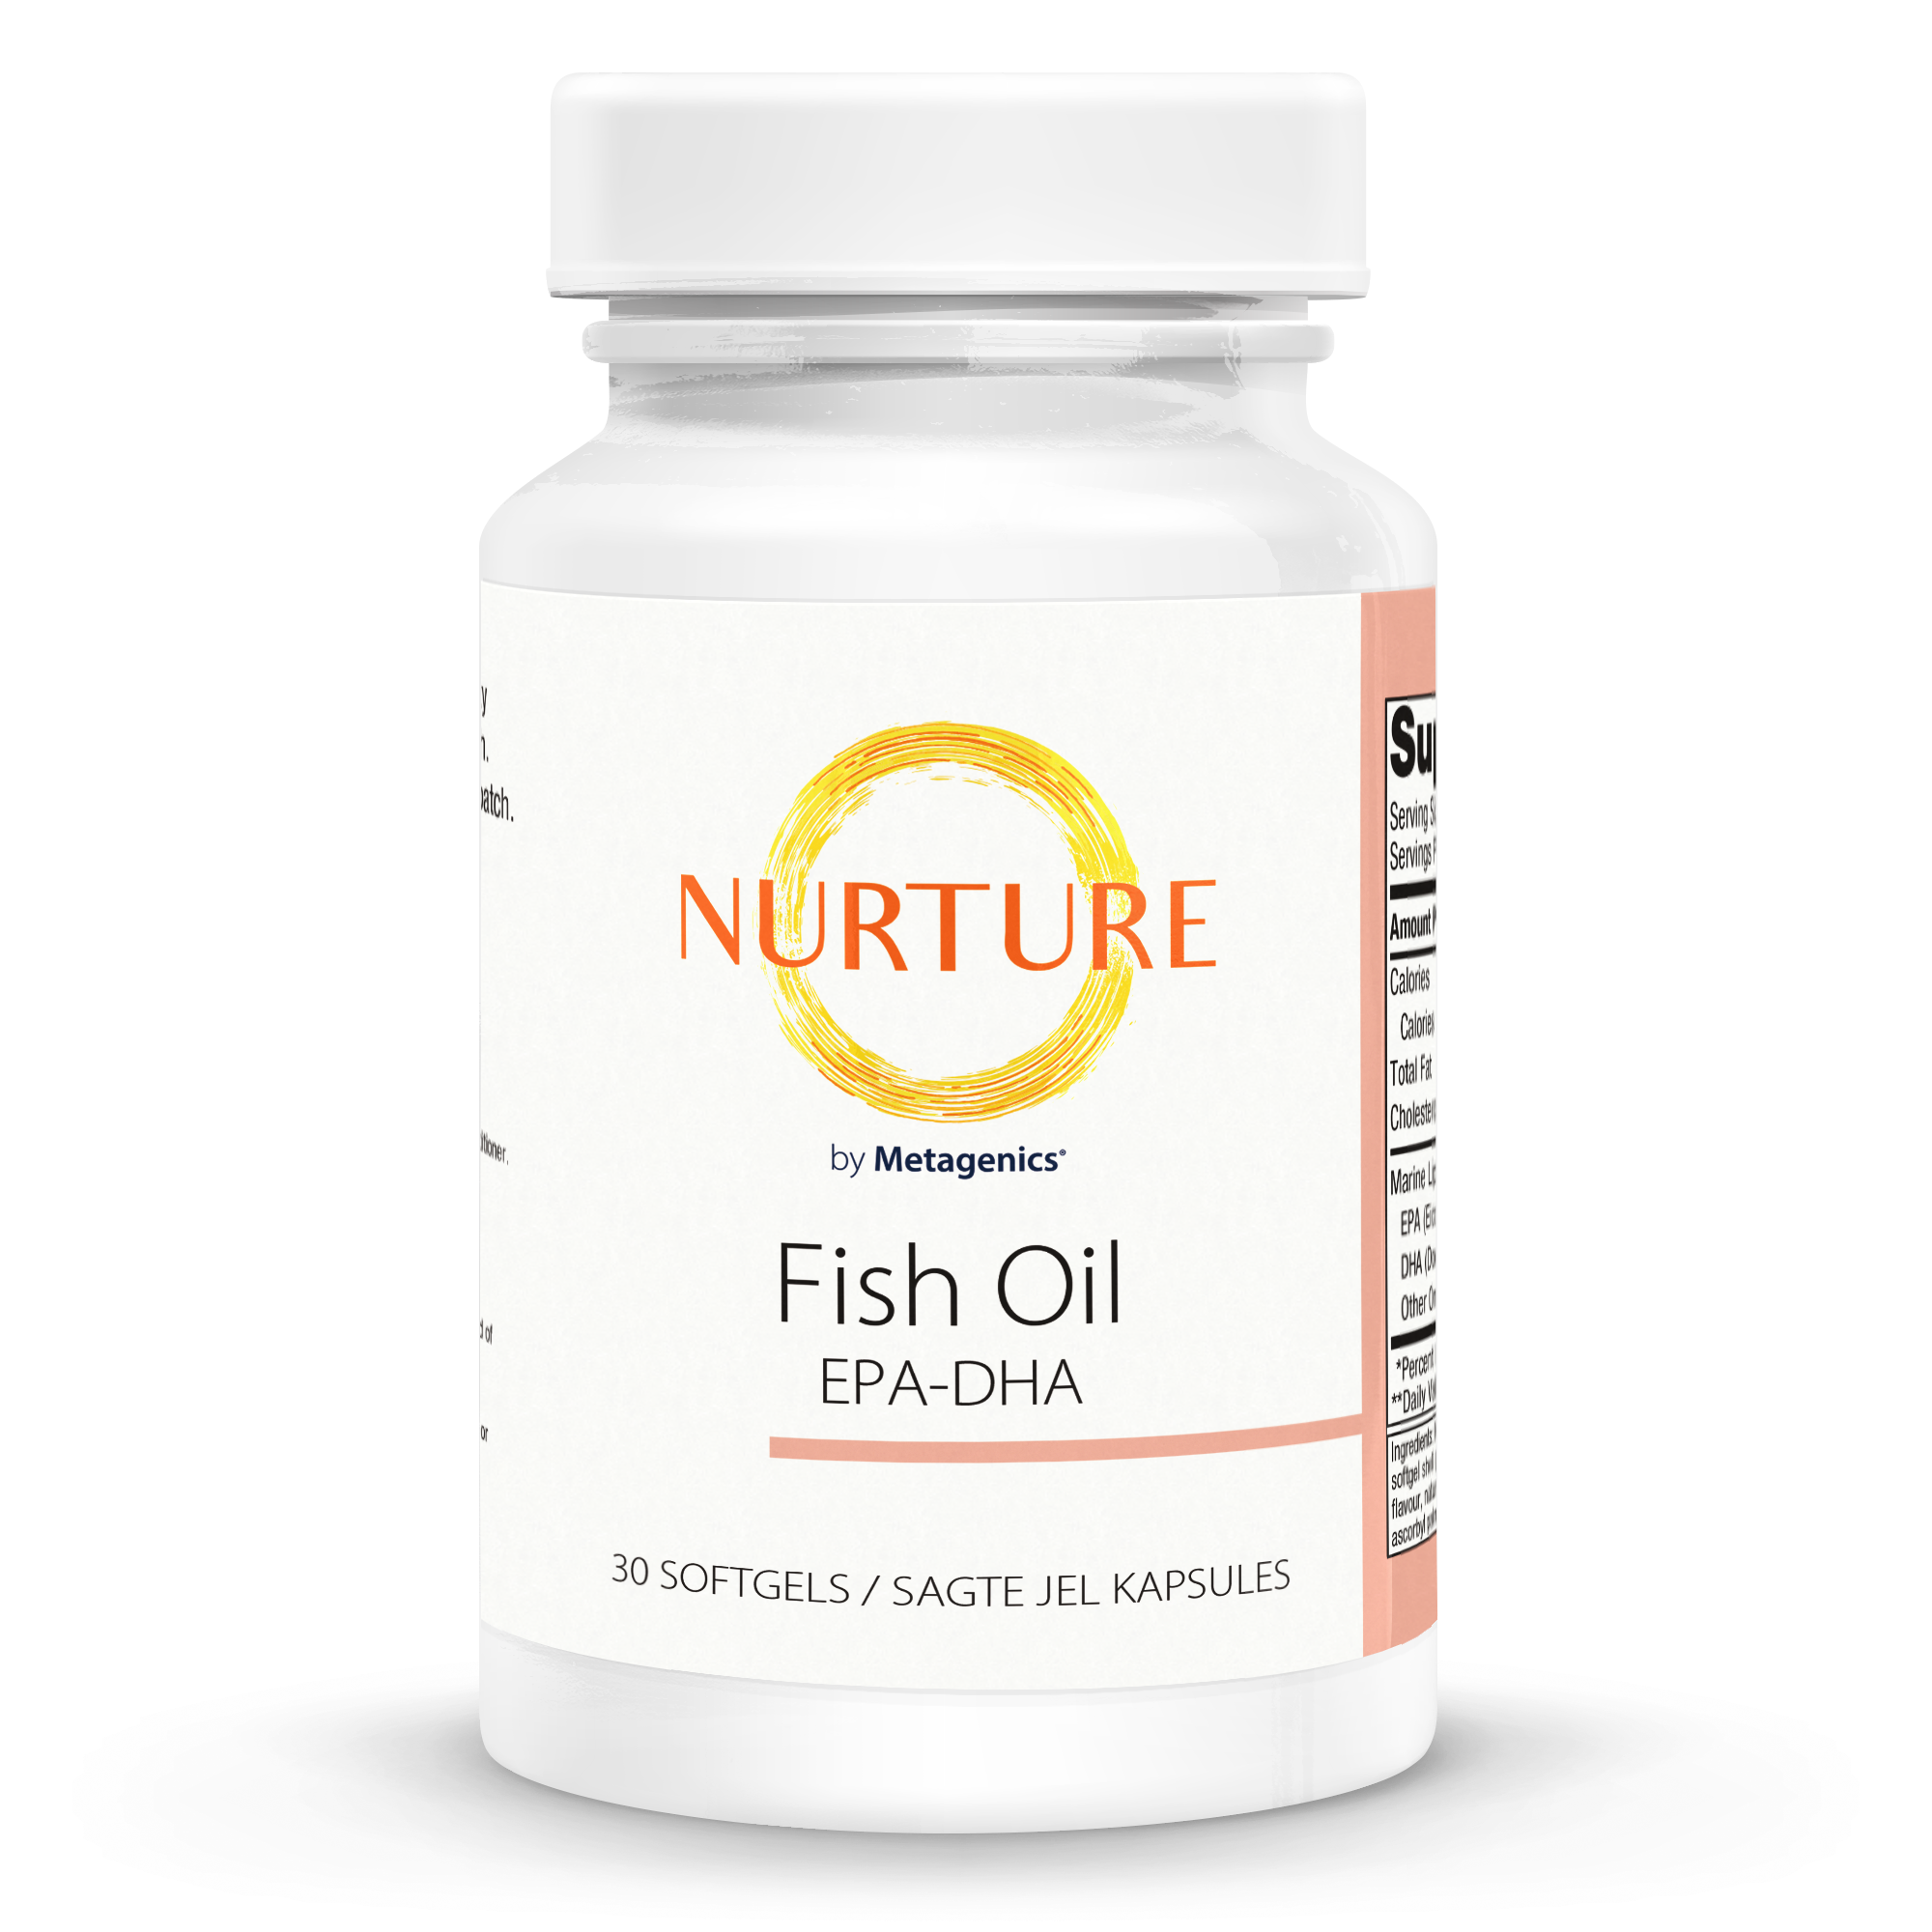 Nurture Fish Oil EPA-DHA